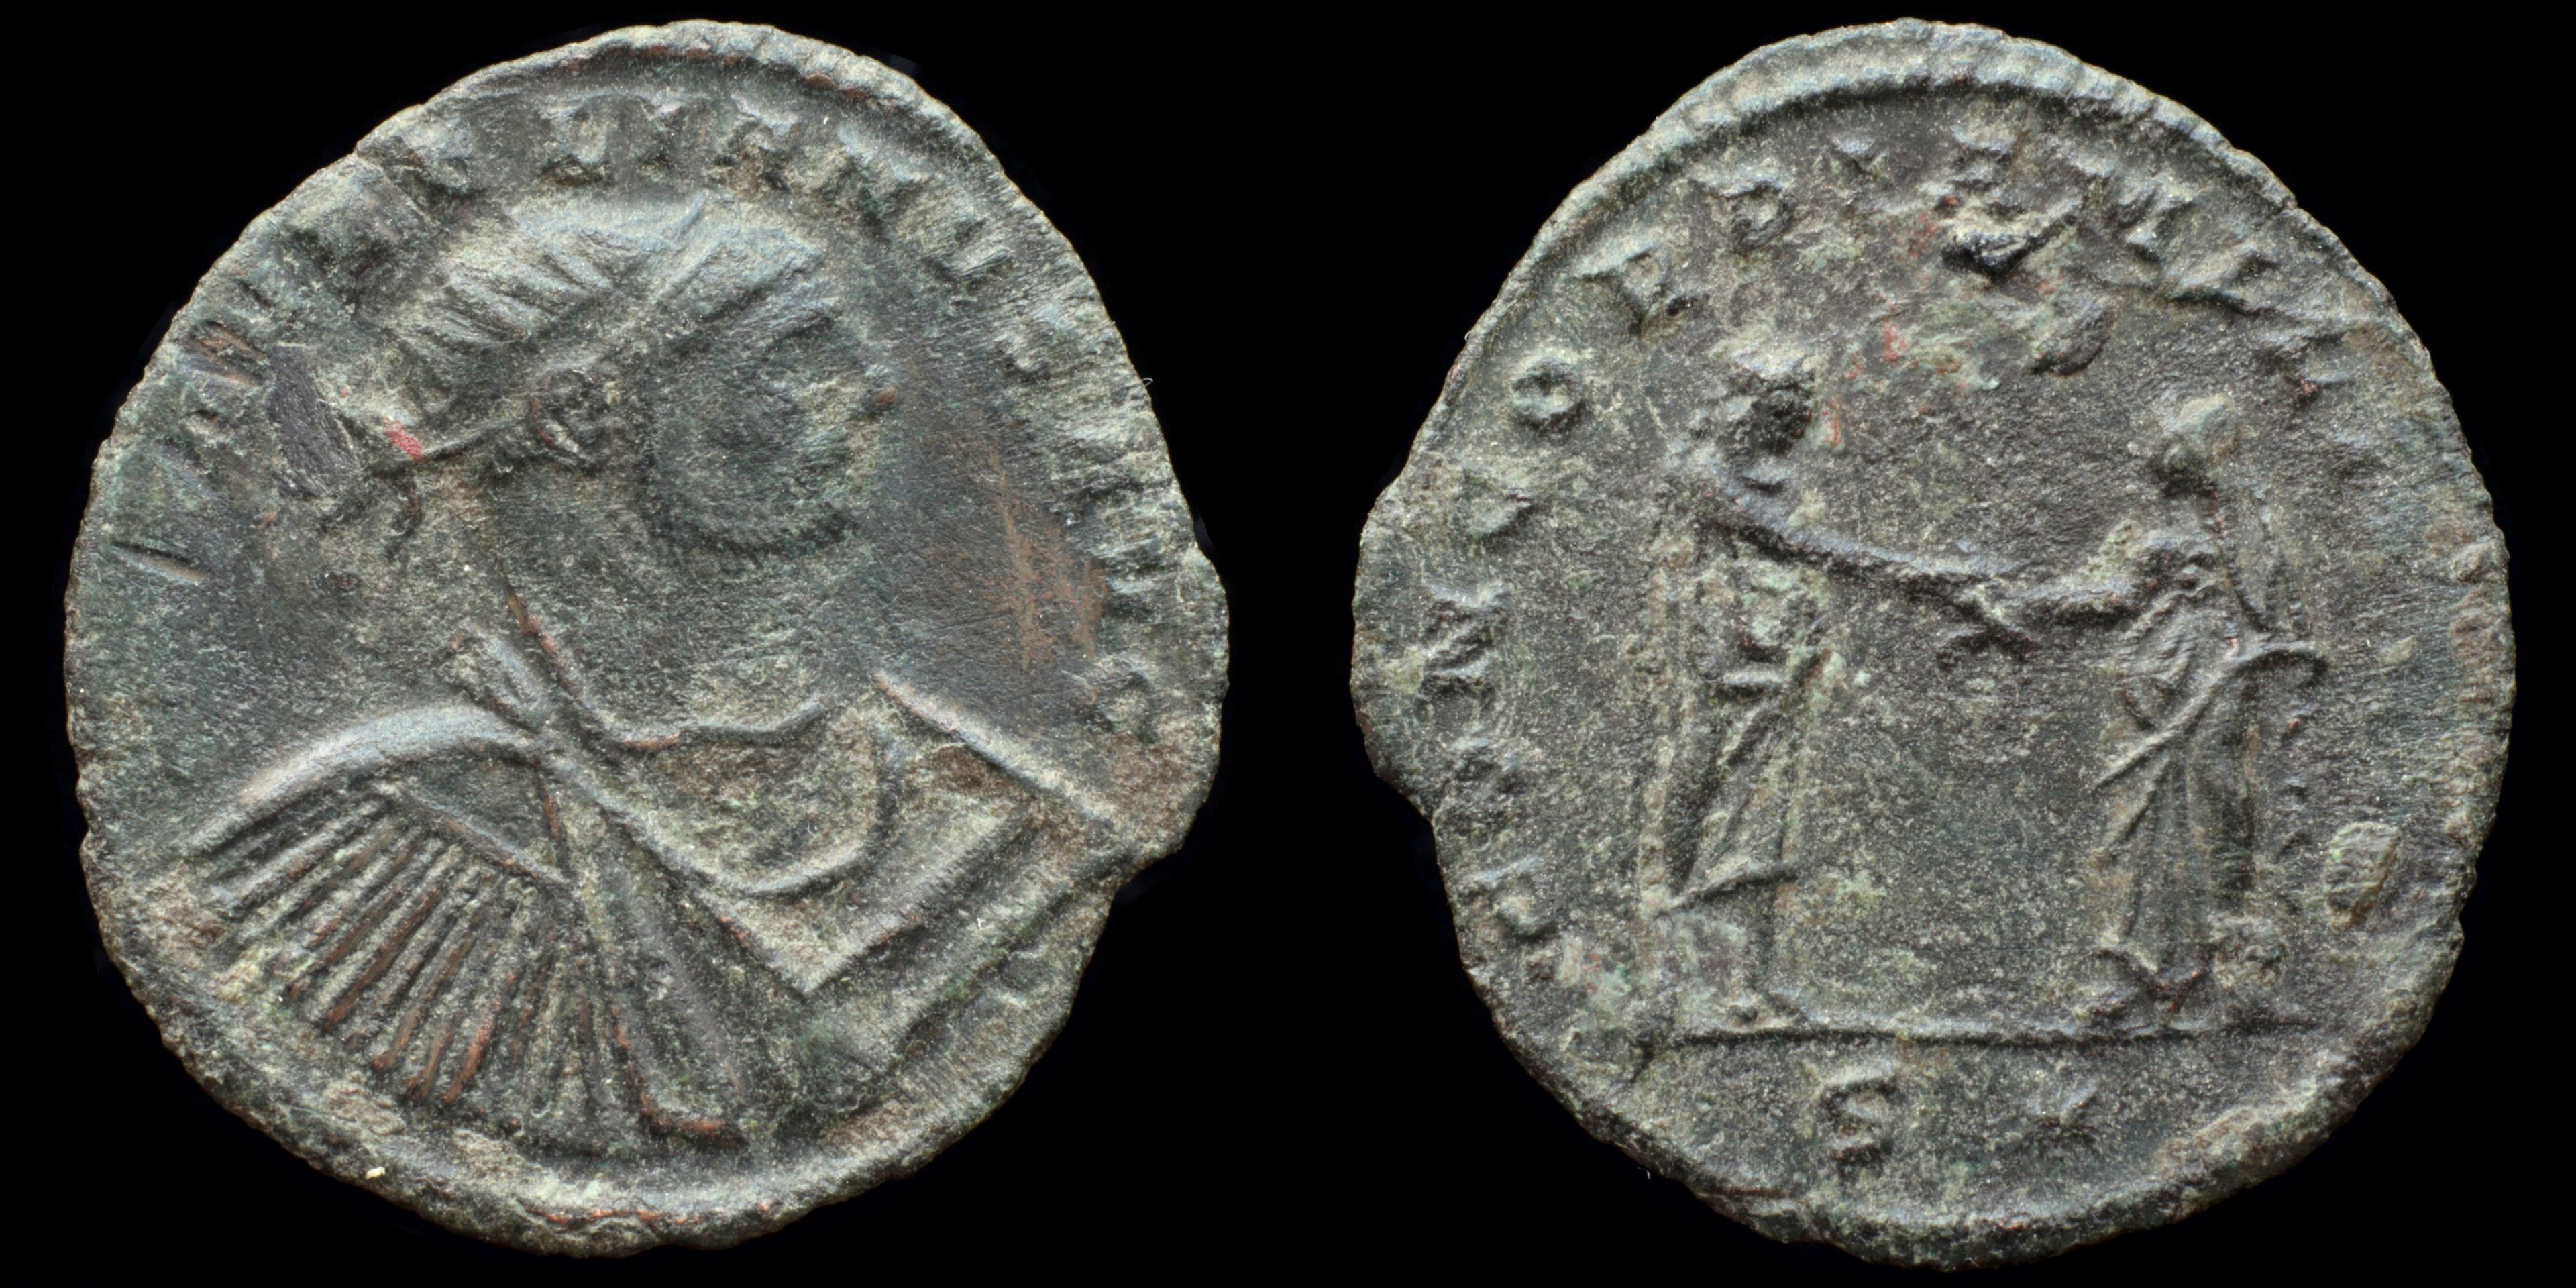 /Files/Images/Coinsite/CoinDB/1350_Aurelian_2192.jpg